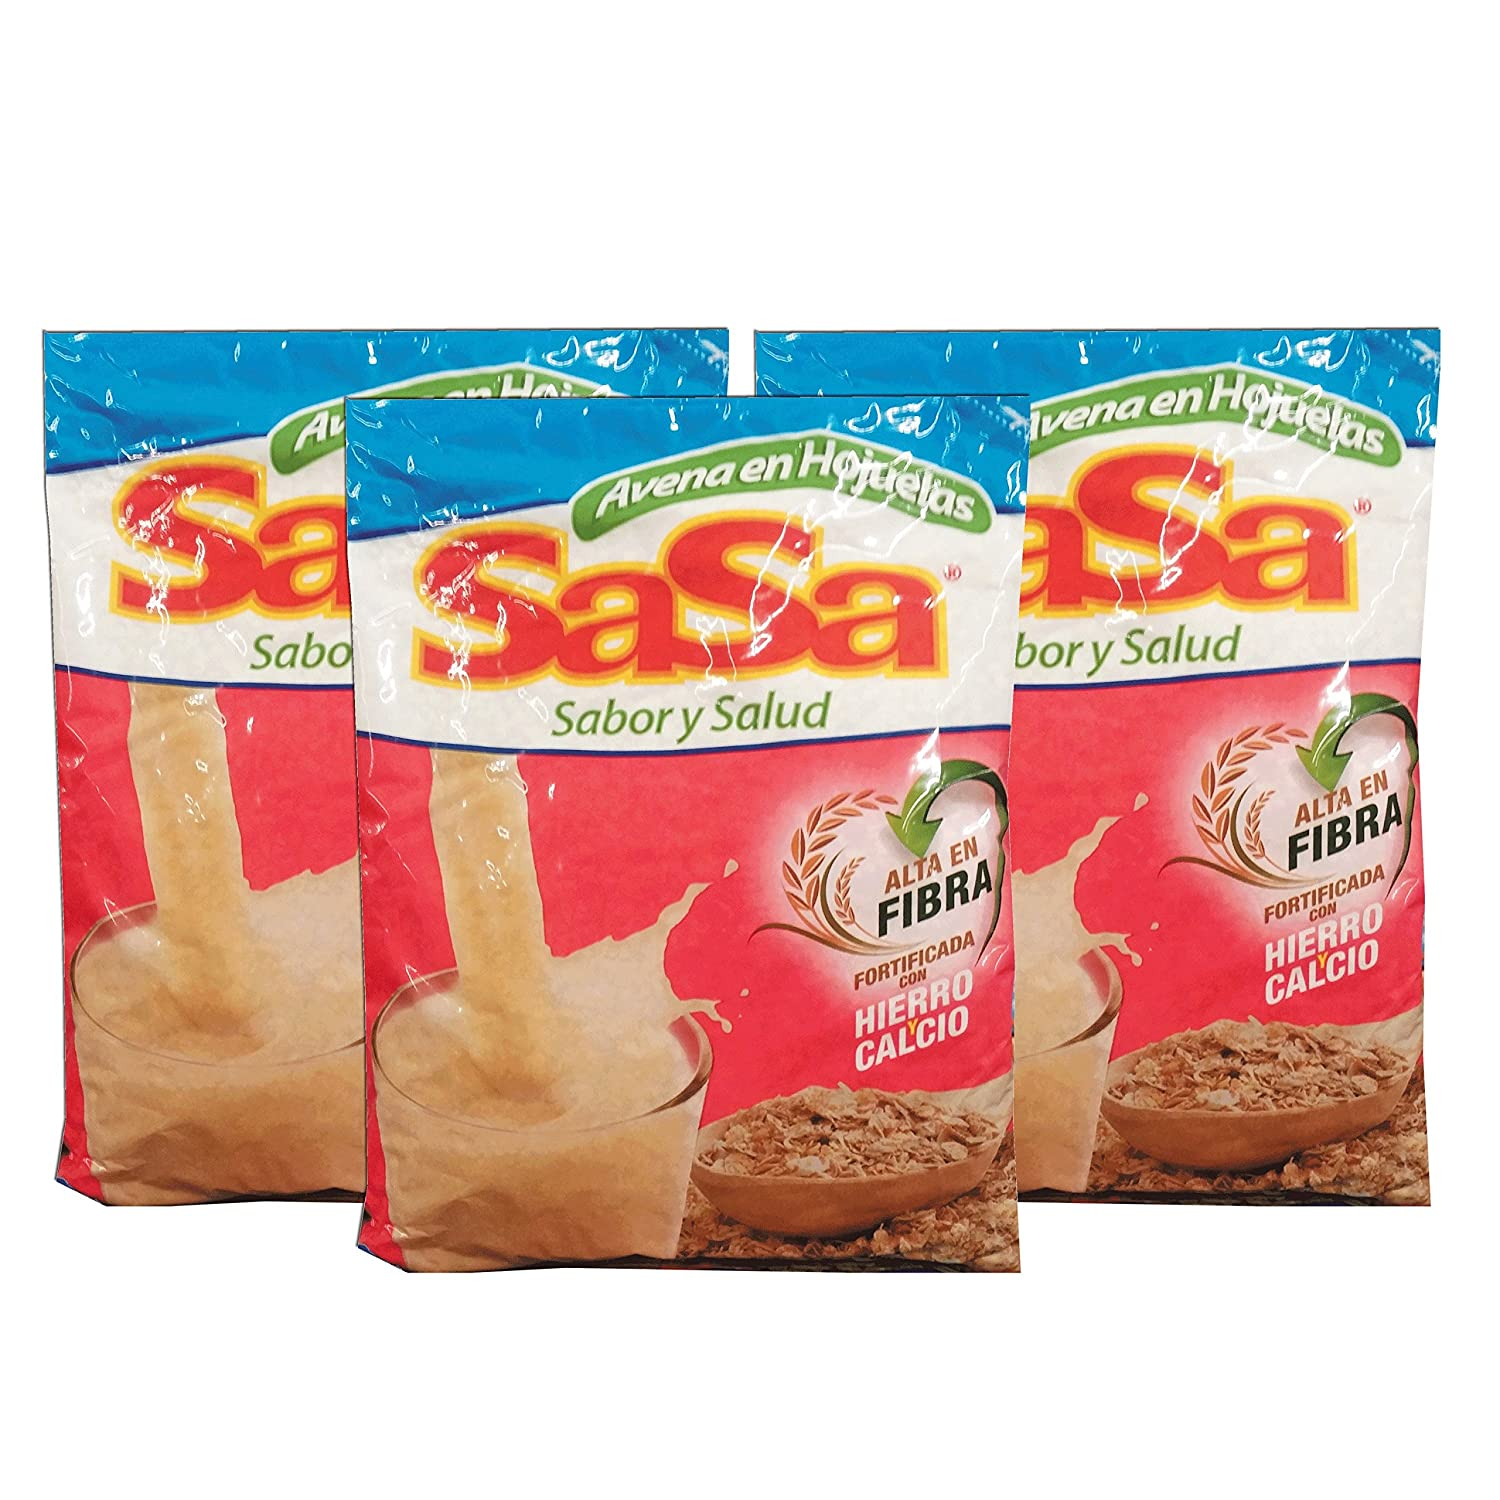 Amazon.com : Typical Nicaraguan Beverages (Barley | Cebada) (3 Pack) : Grocery & Gourmet Food